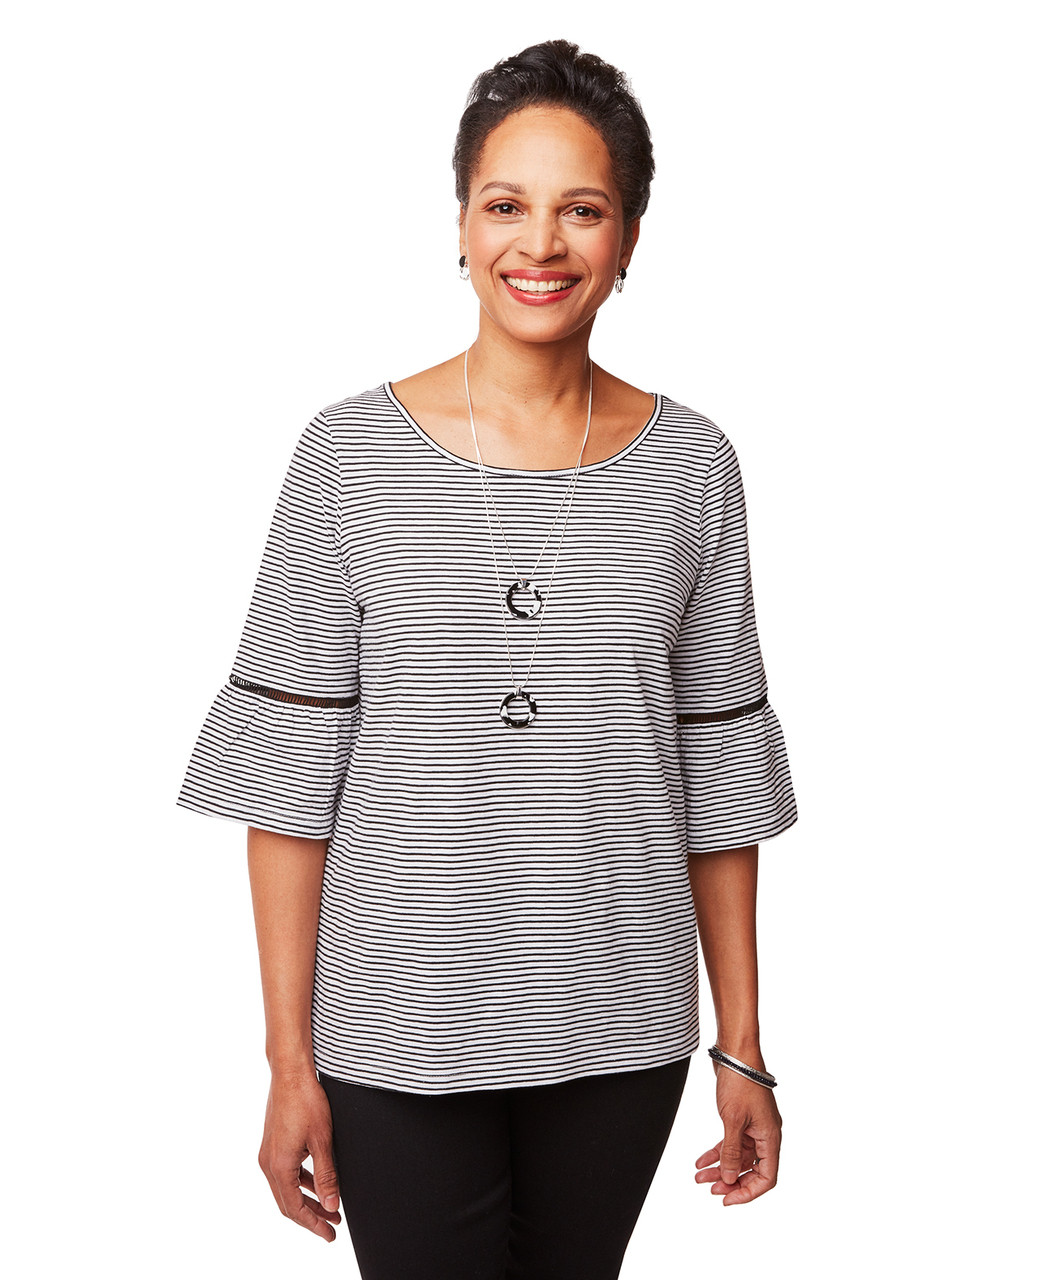 af05642bfa26 Women's White Stripe Bell Sleeve Top | Northern Reflections